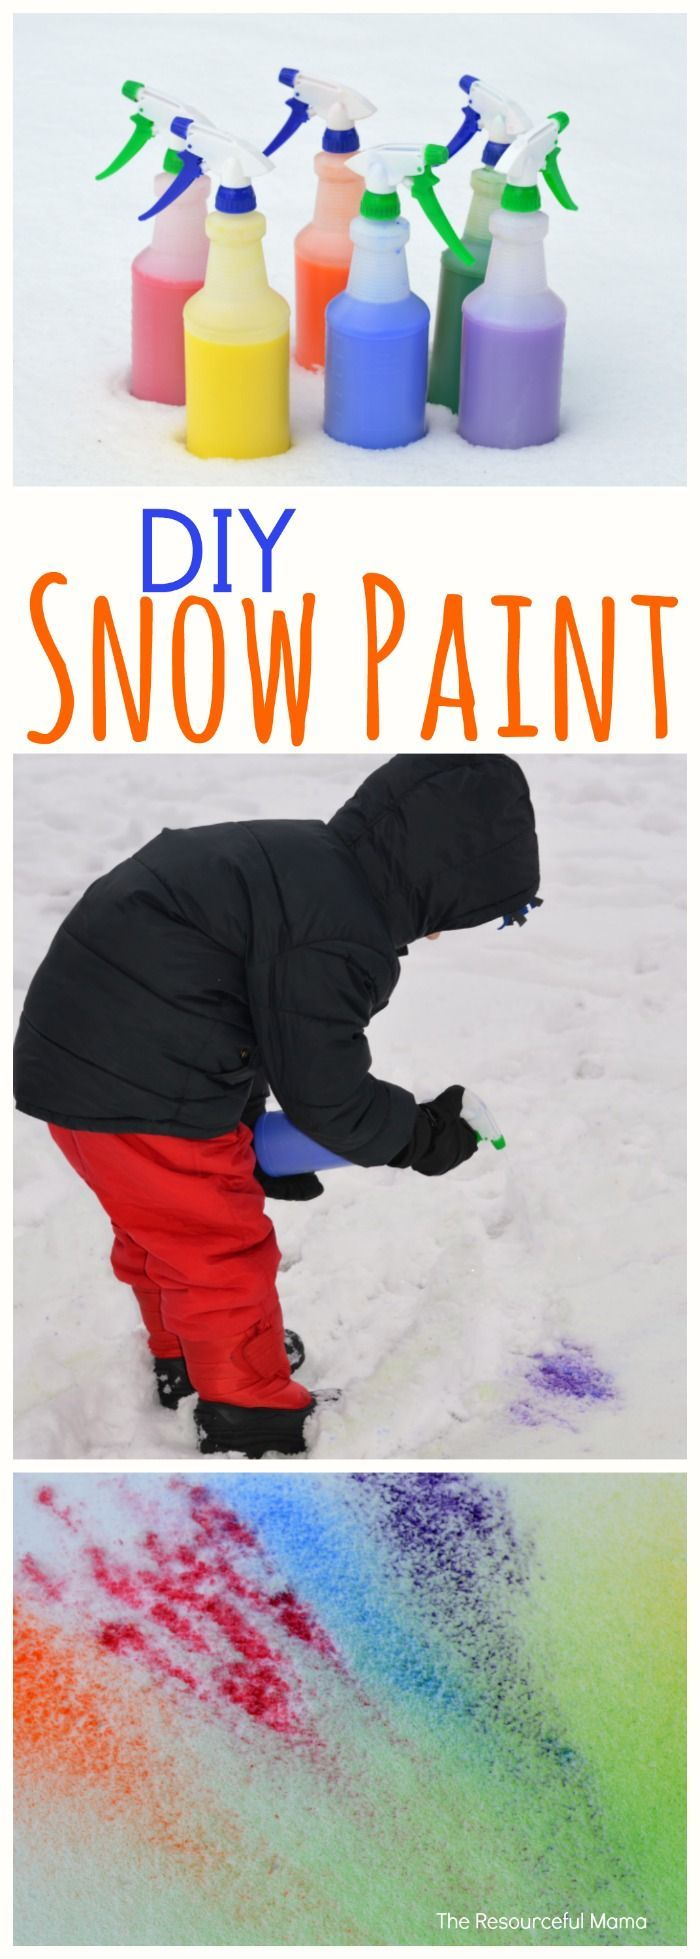 Painting the Snow Fun Winter Activity